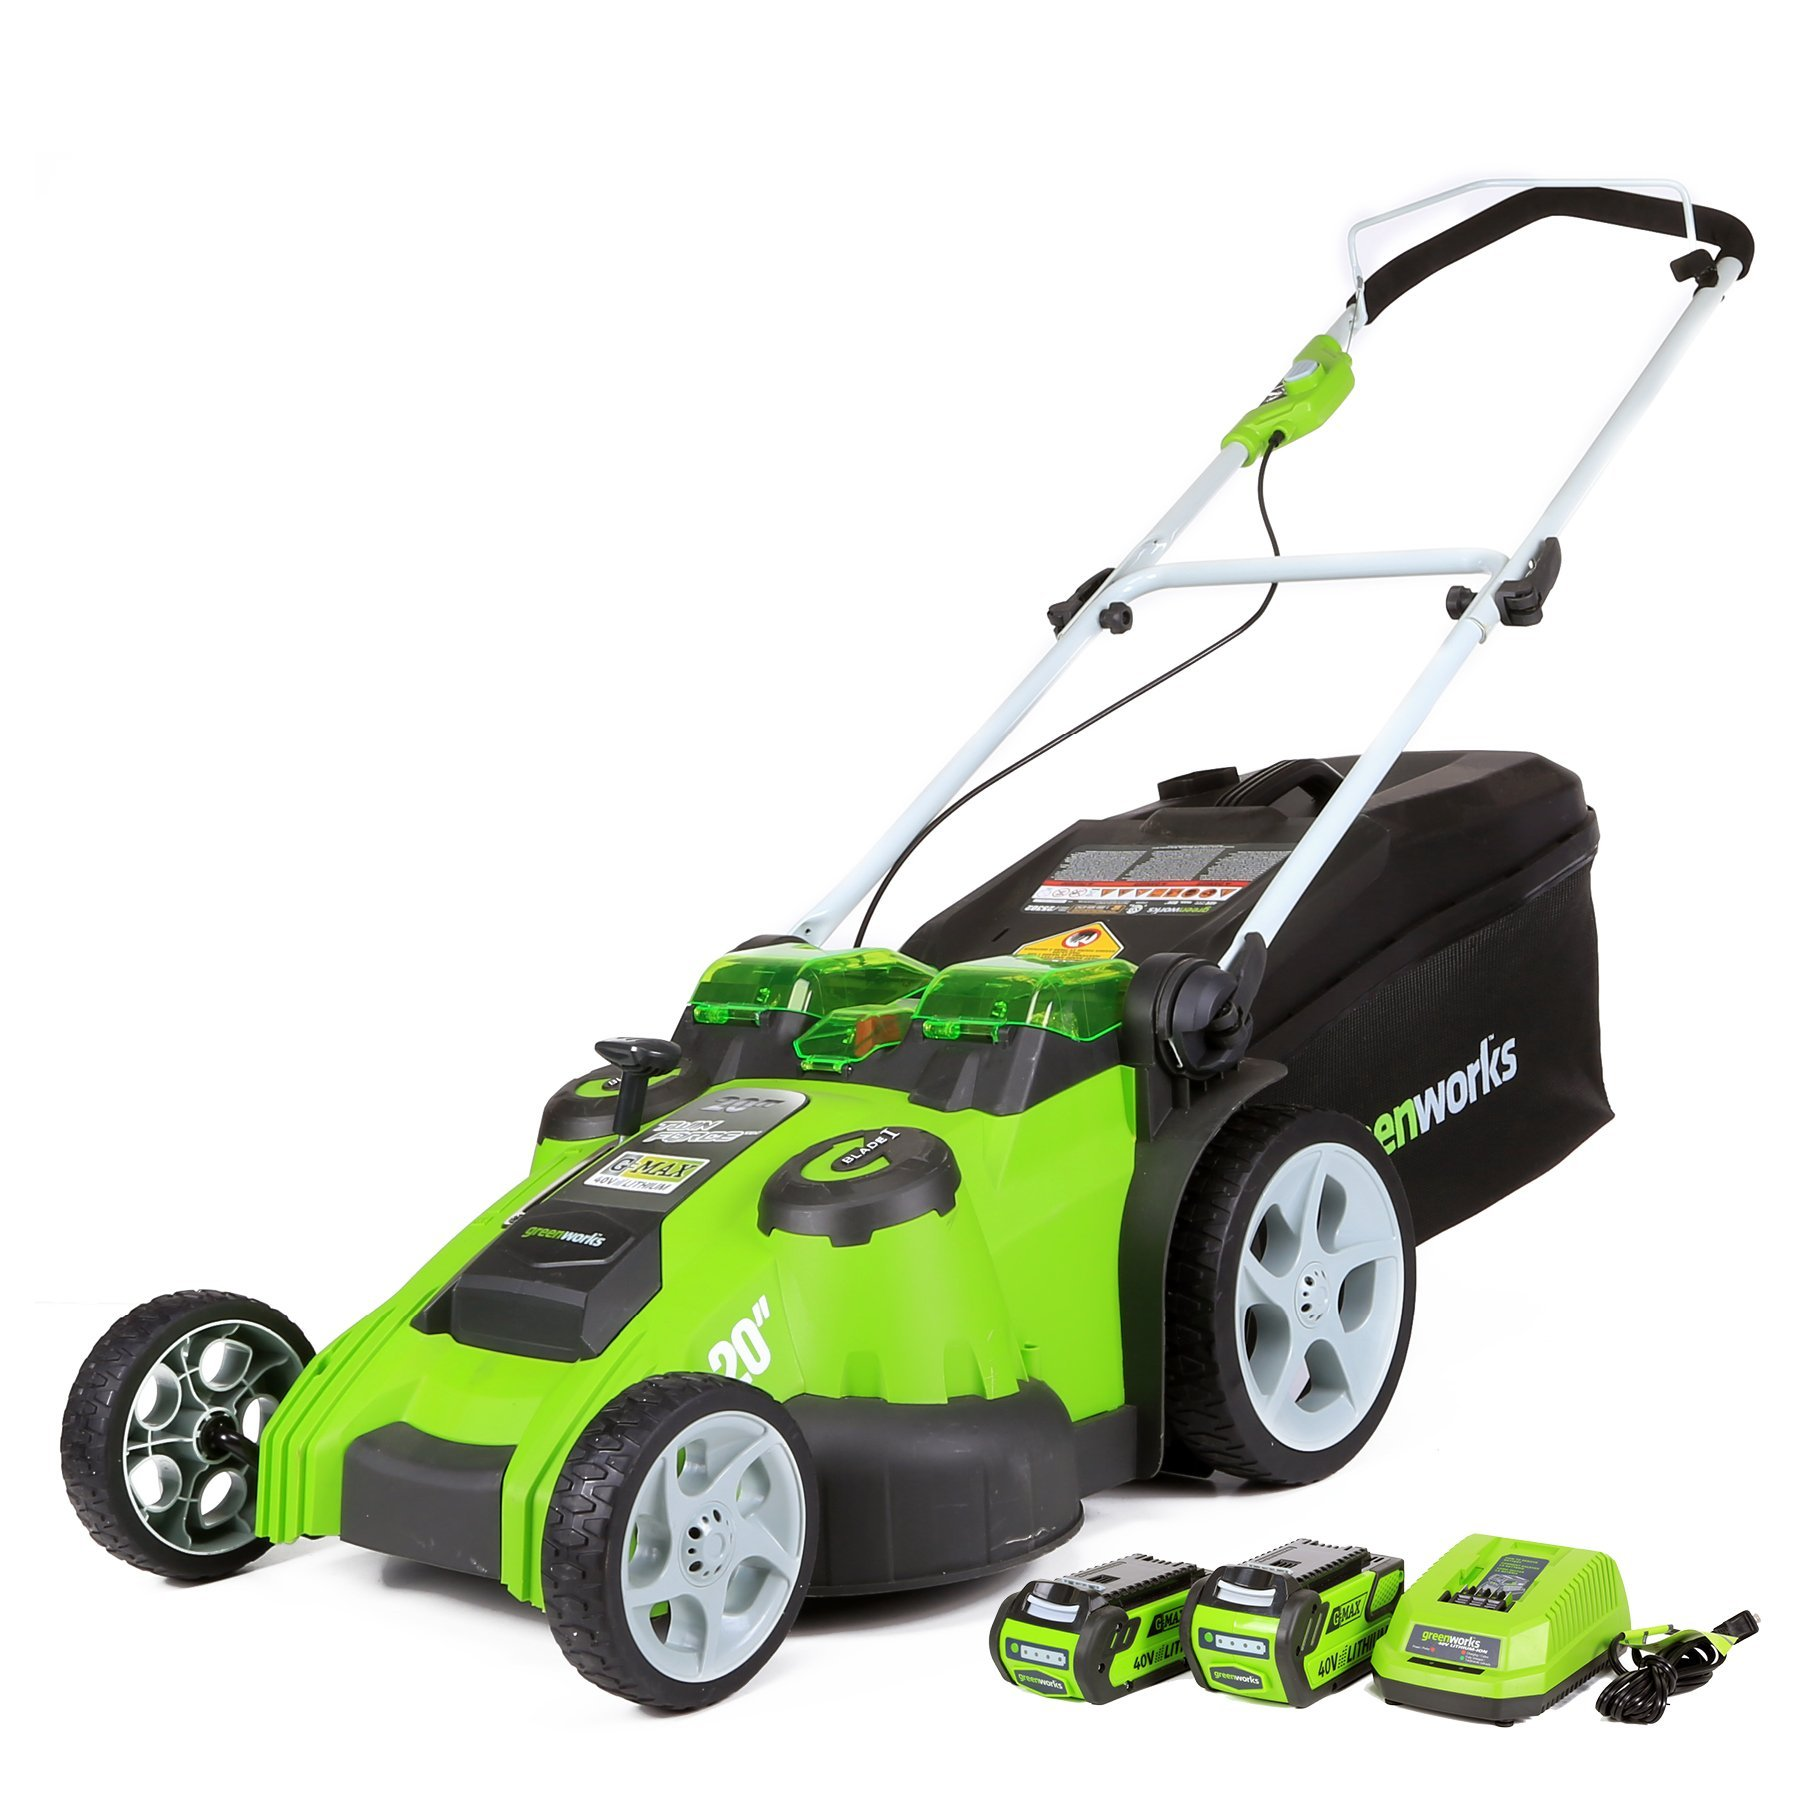 Greenworks 20-Inch 40V Twin Force Cordless Lawn Mower, 4.0 AH & 2.0 AH Batteries Included 25302 by Greenworks